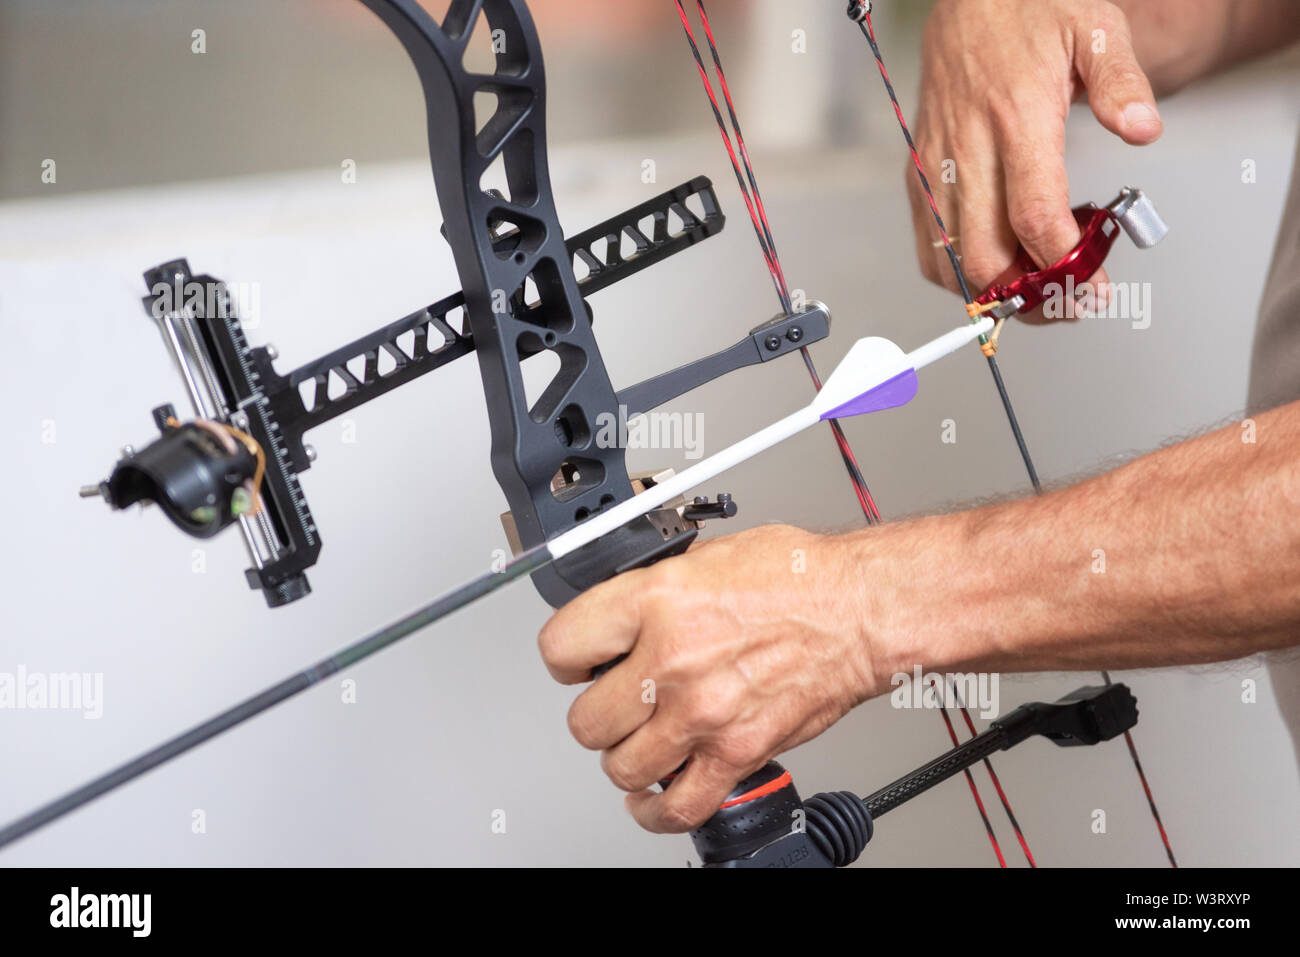 Archer hands close up, preparing the arrow for the shot . - Stock Image